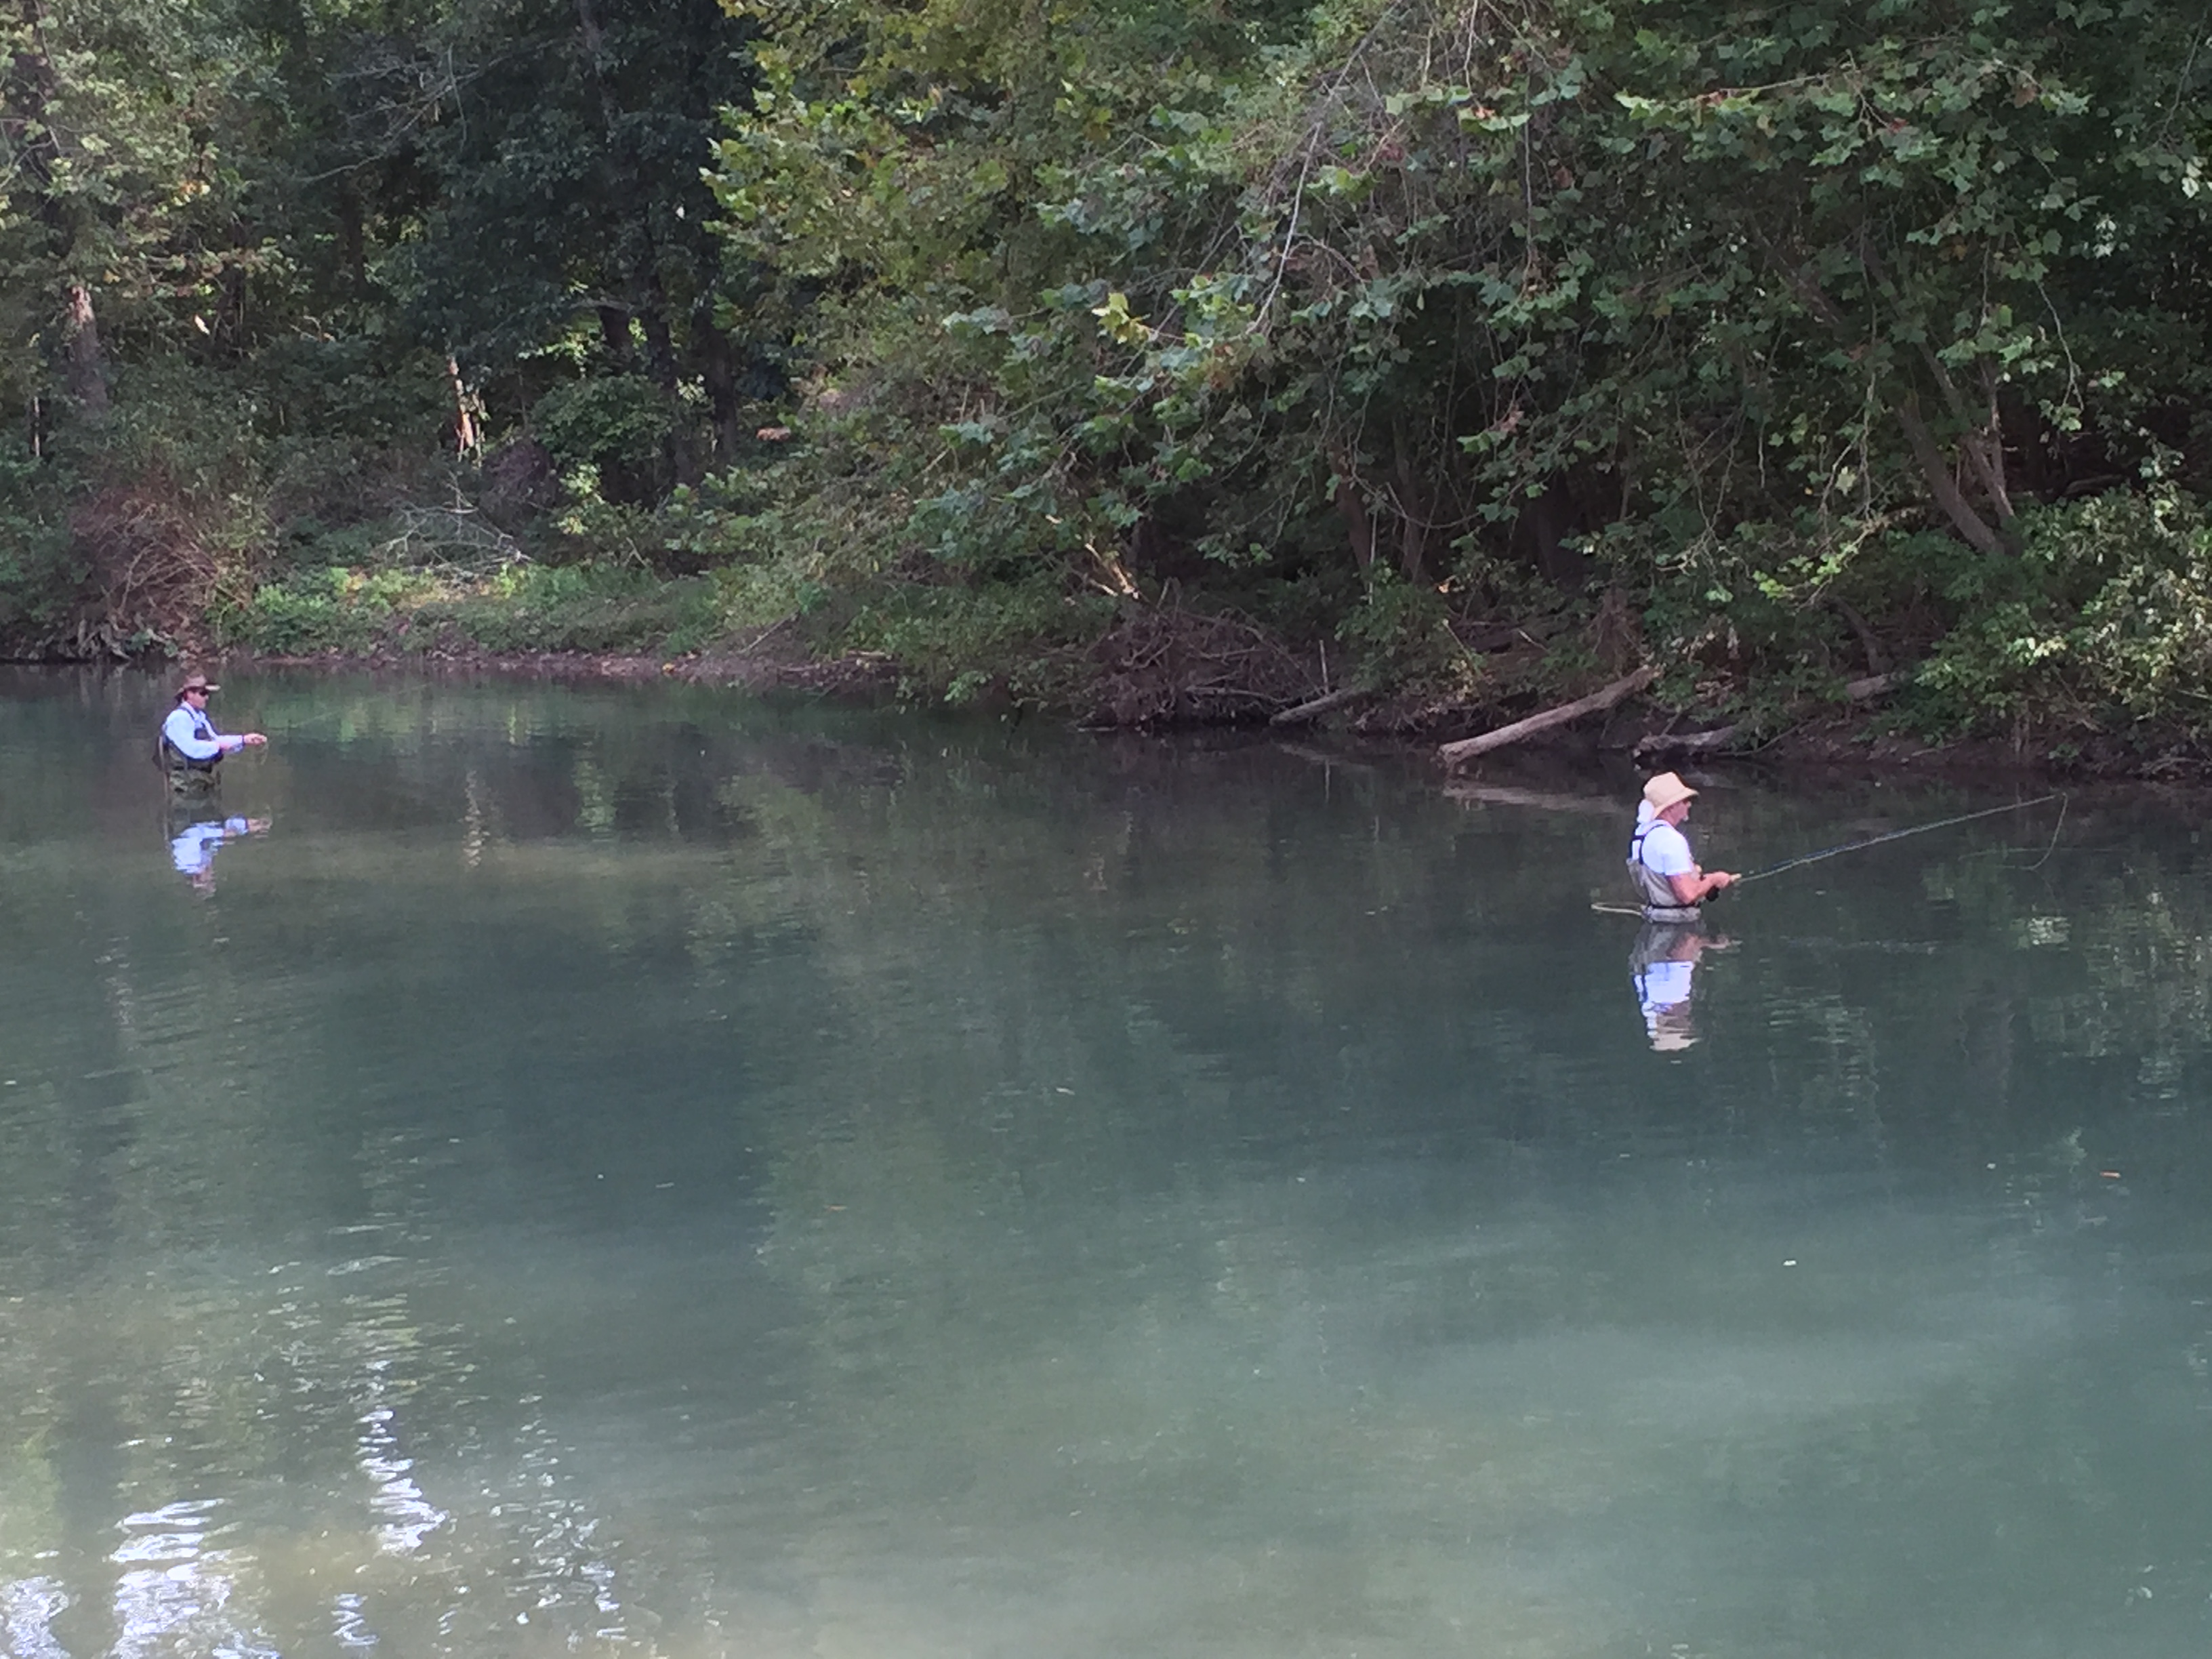 Fishing on the Roaring River in the Ozarks – Missouri